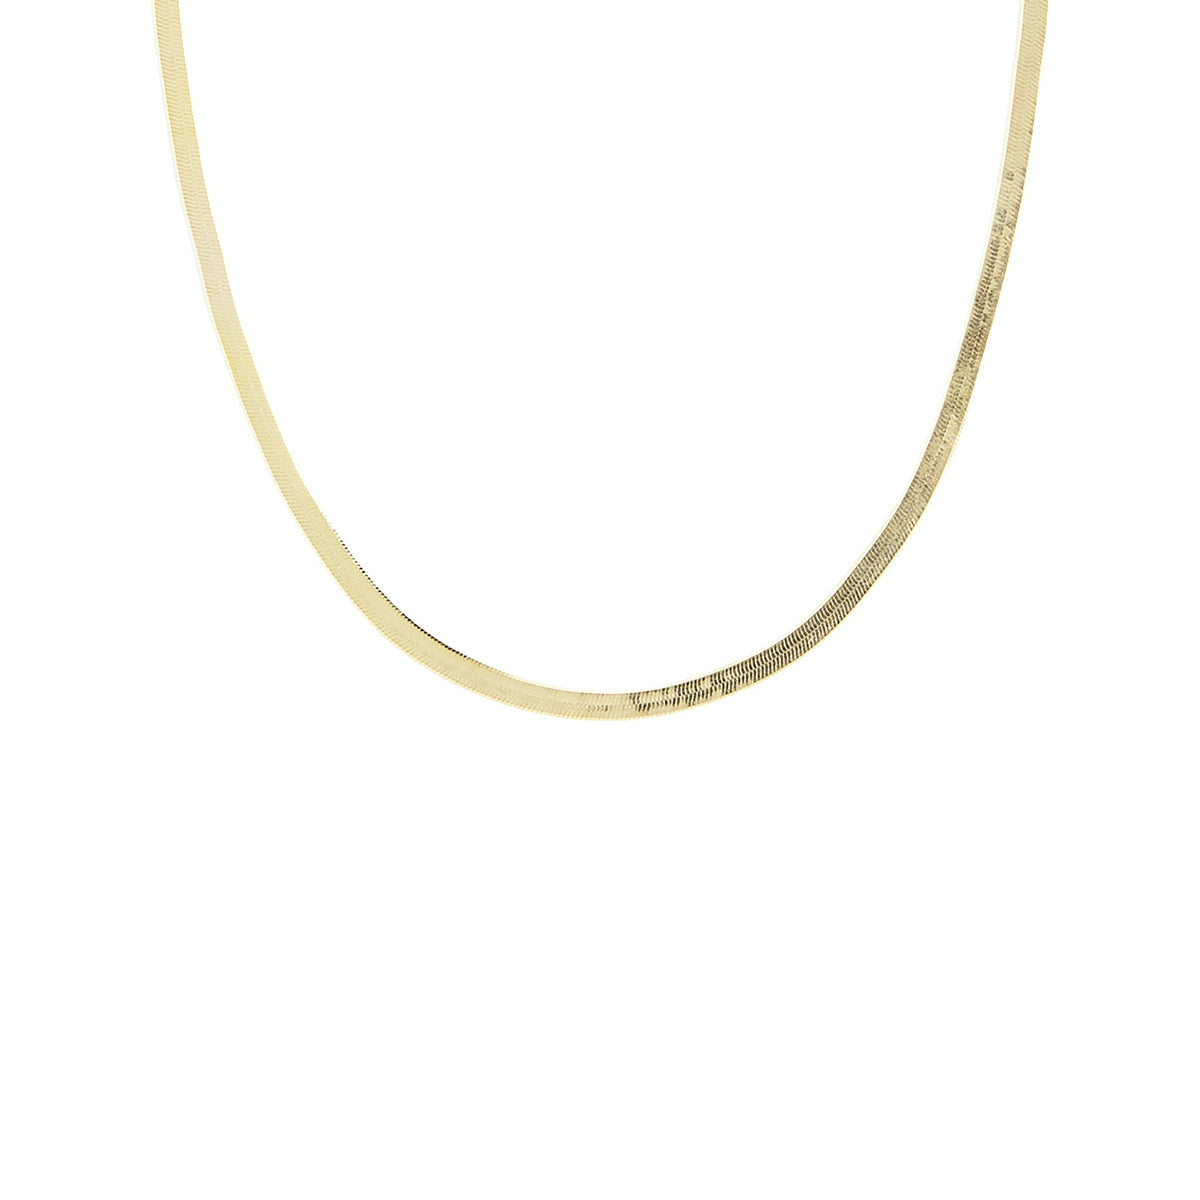 "CHARMING HERRINGBONE CHAIN 14-16.5 "" NECKLACE GOLD - SO PRETTY CARA COTTER"